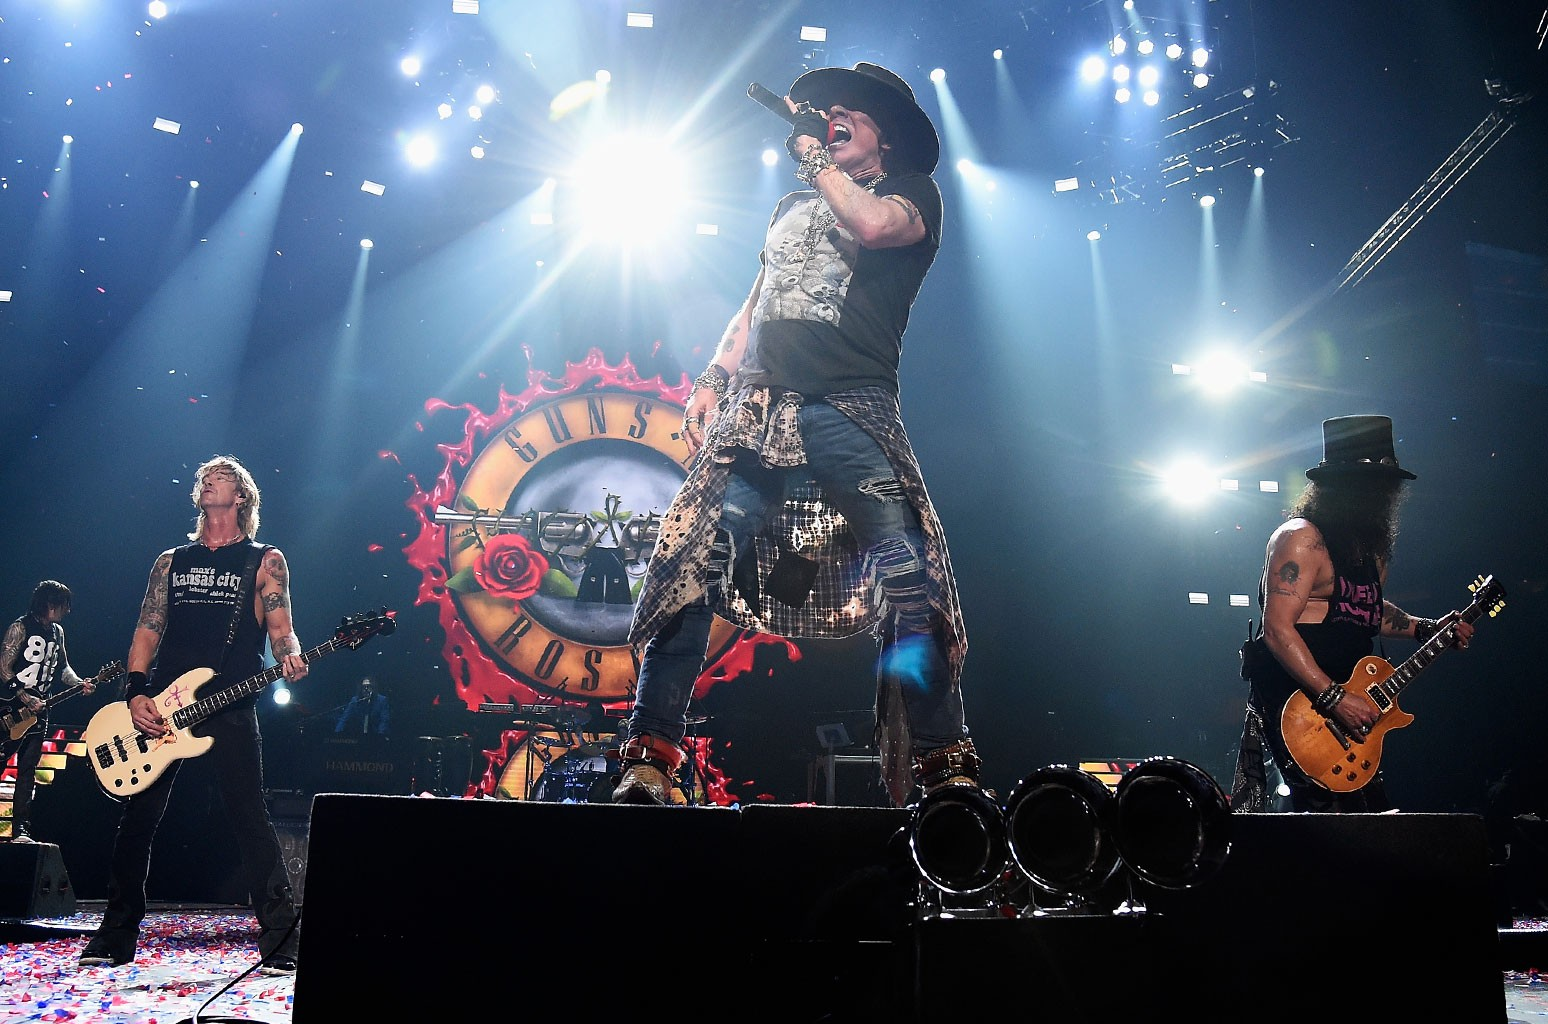 Axl Rose of Guns N' Roses